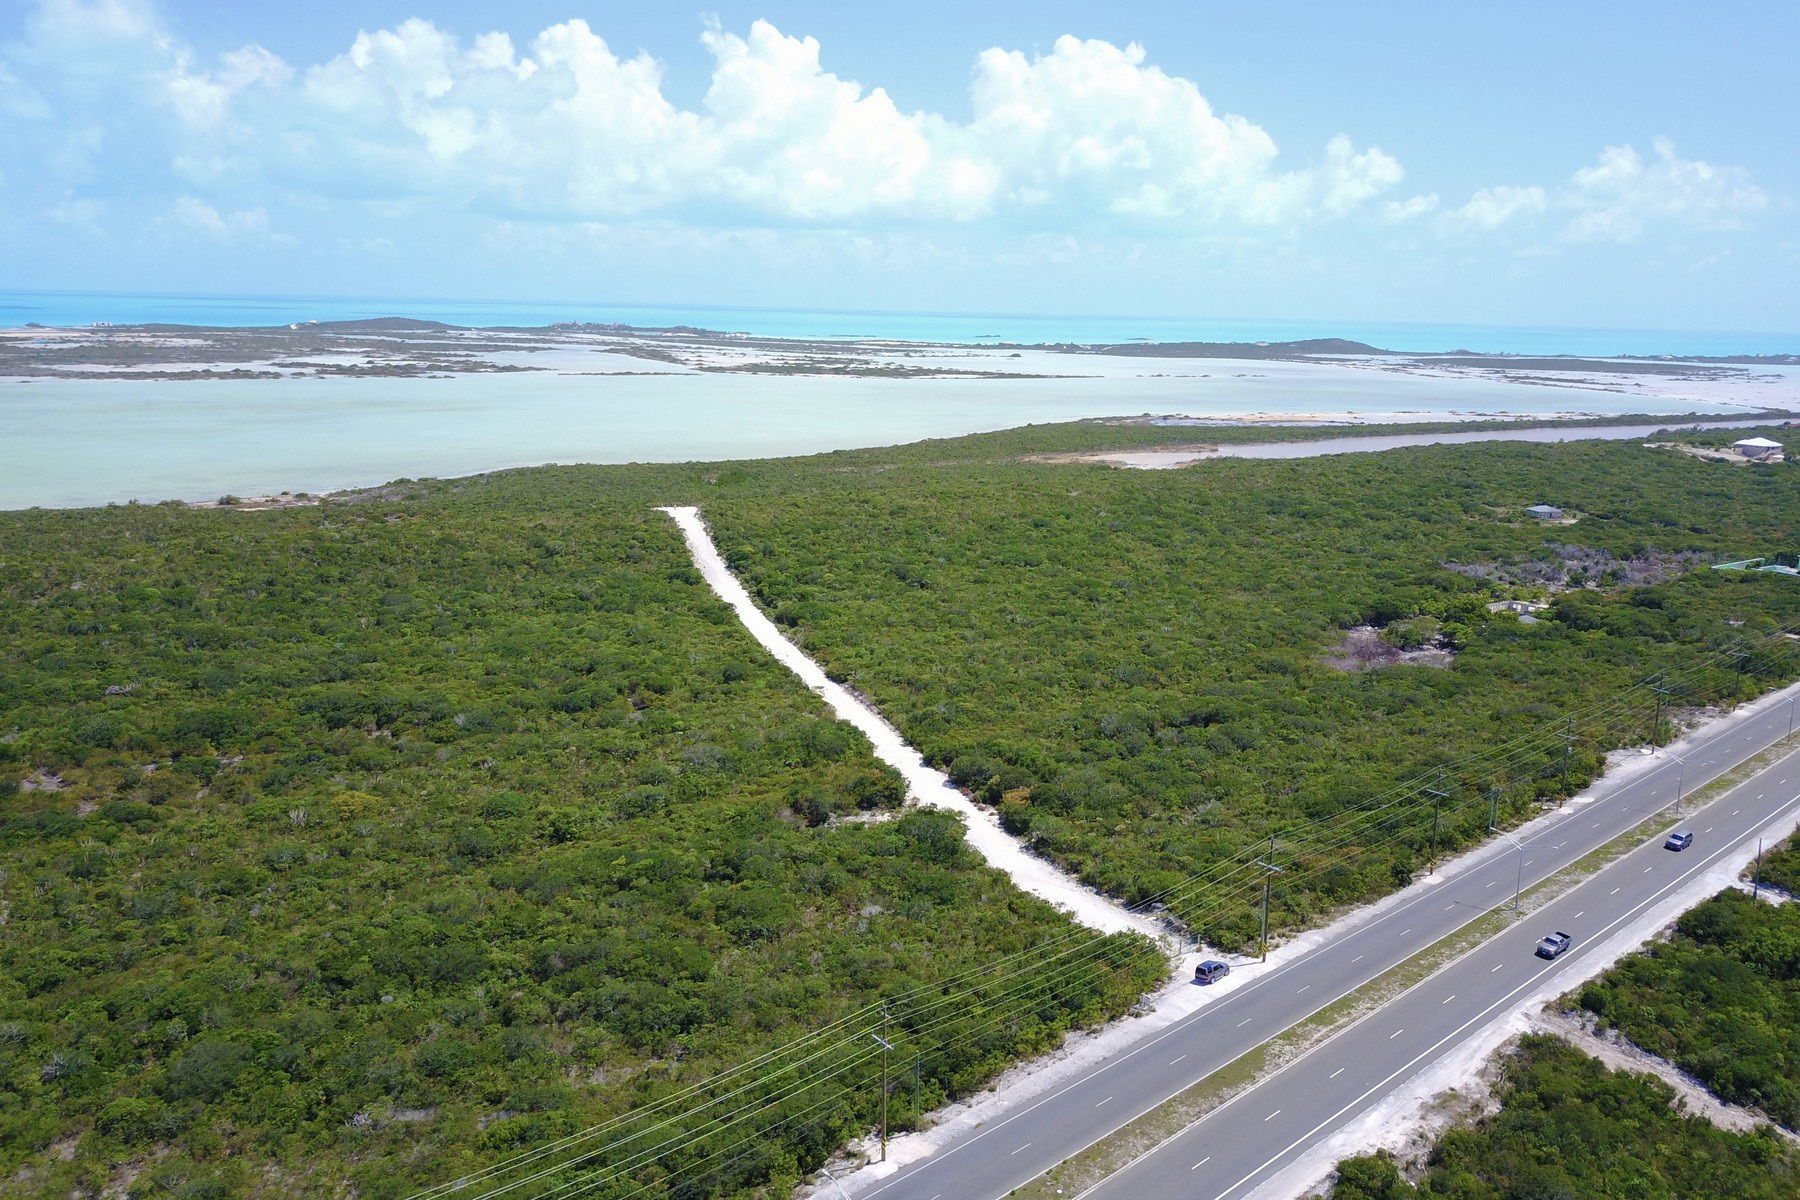 Land for Sale at Undeveloped Land Leeward Highway Oceanview, The Bight, Providenciales, TKCA 1ZZ Turks And Caicos Islands